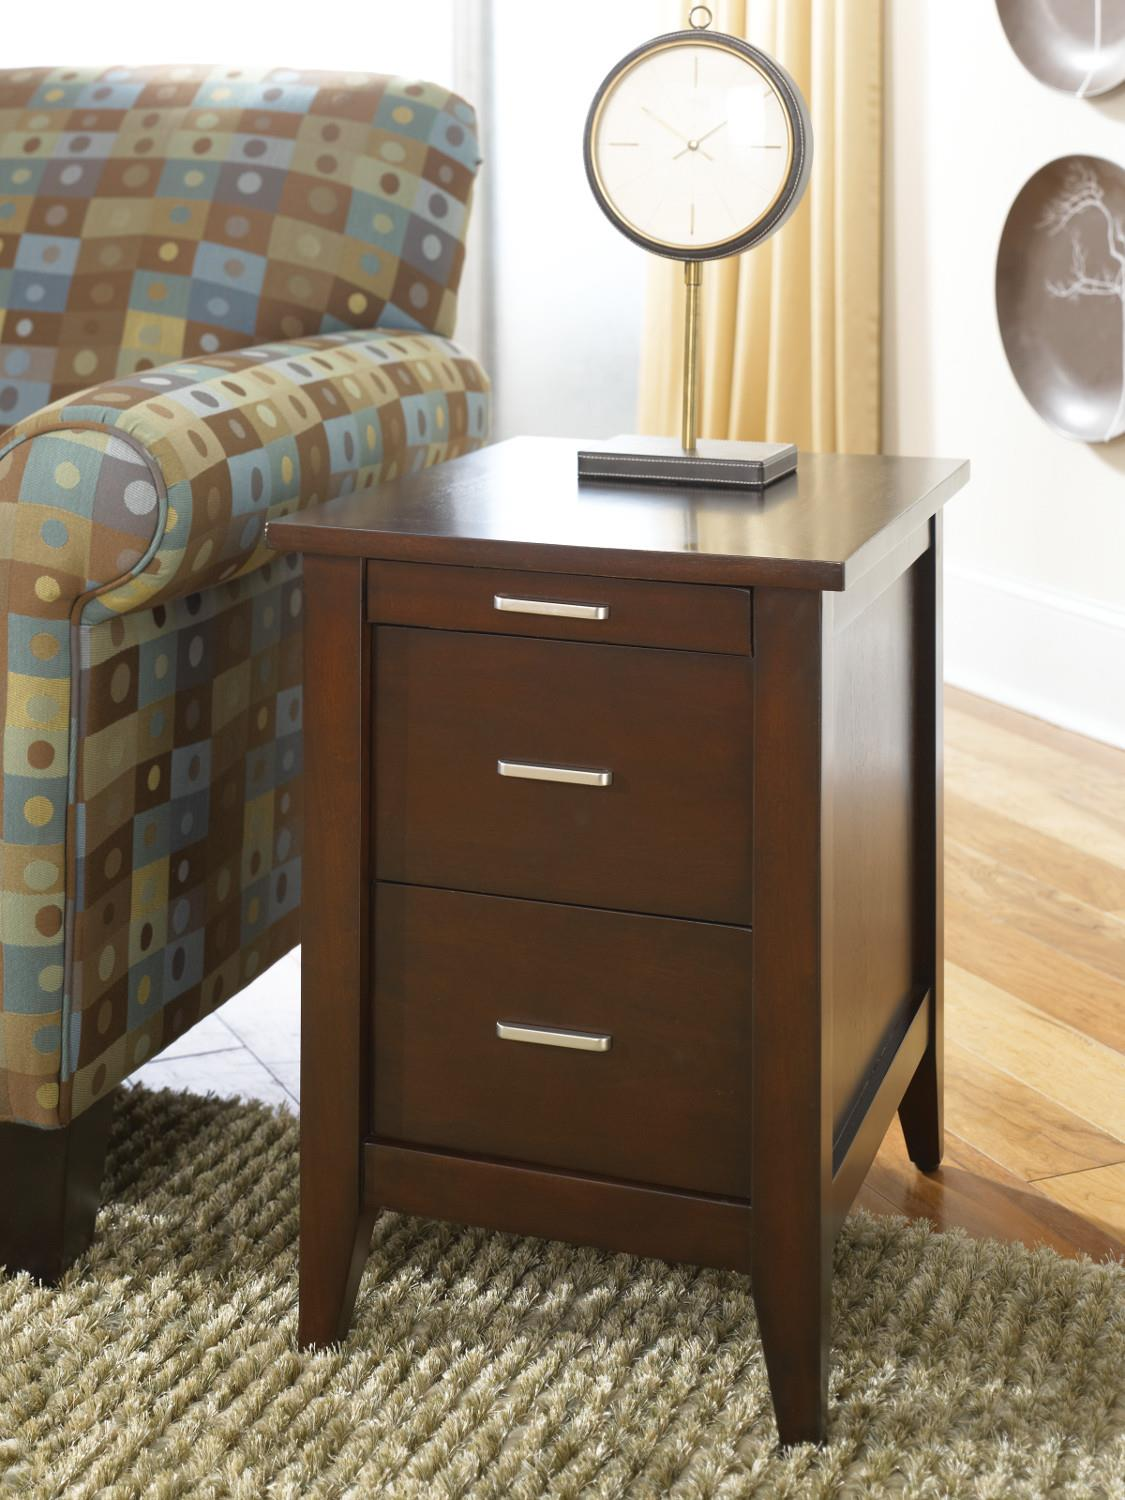 Hammary Chairsides Table - Item Number: T000071-T73738-00